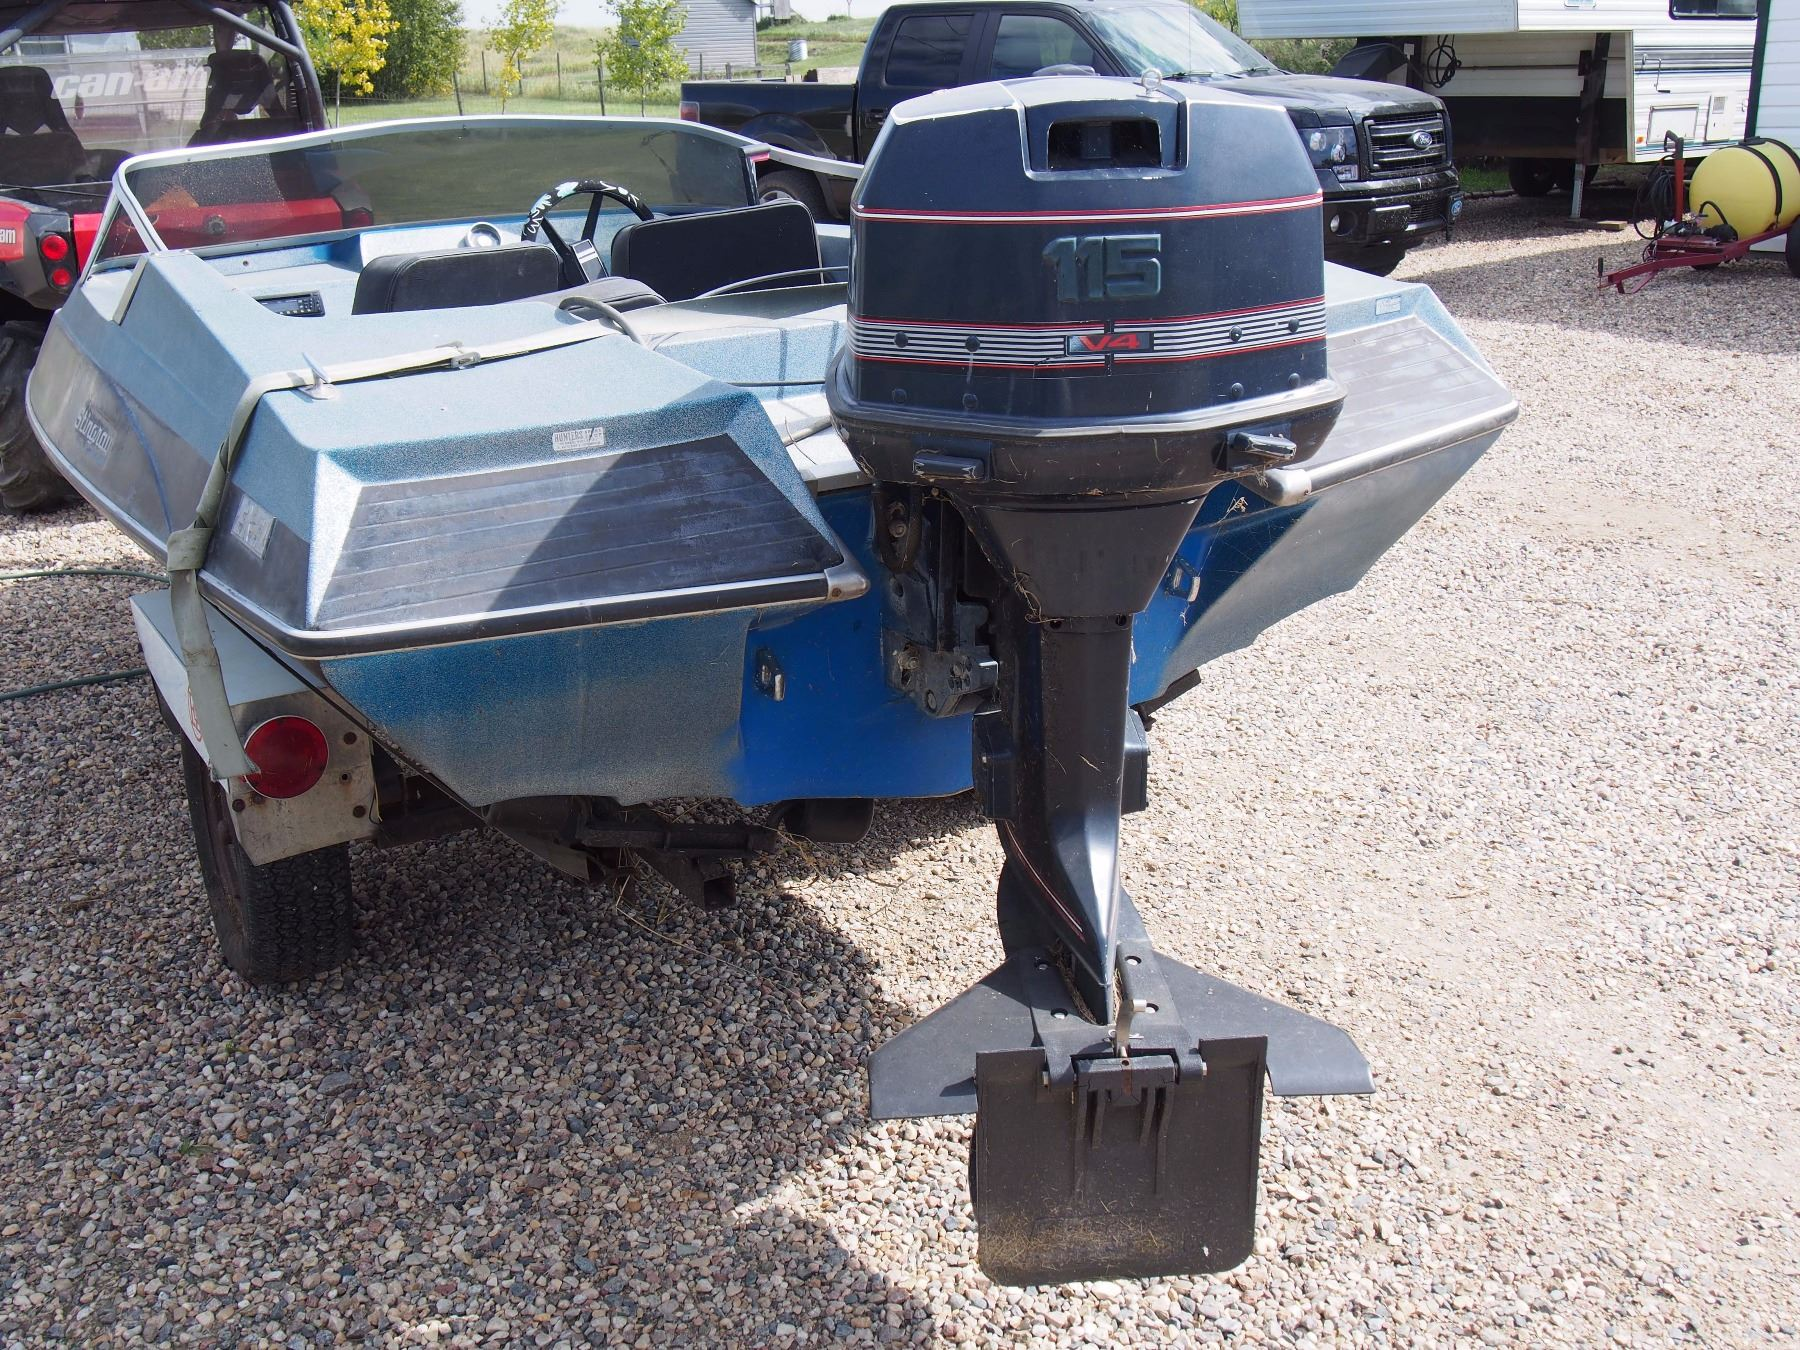 1979 16 Ft Stingray 115 Hp Evinrude Motor W Trailer And Lots Of Extras